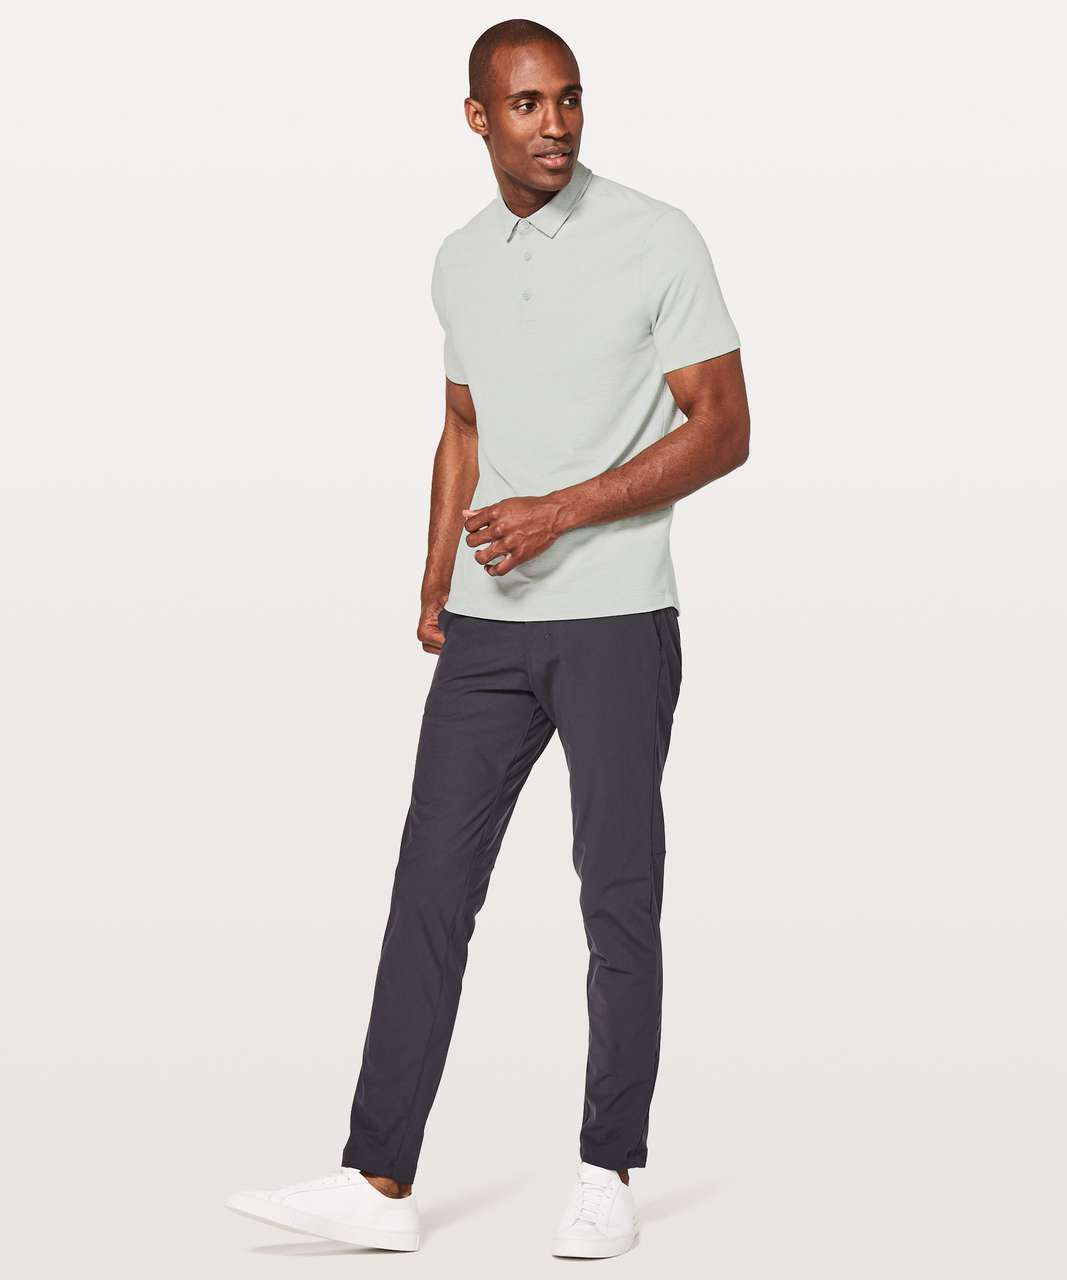 Lululemon Evolution Polo - Heathered Sea Salt